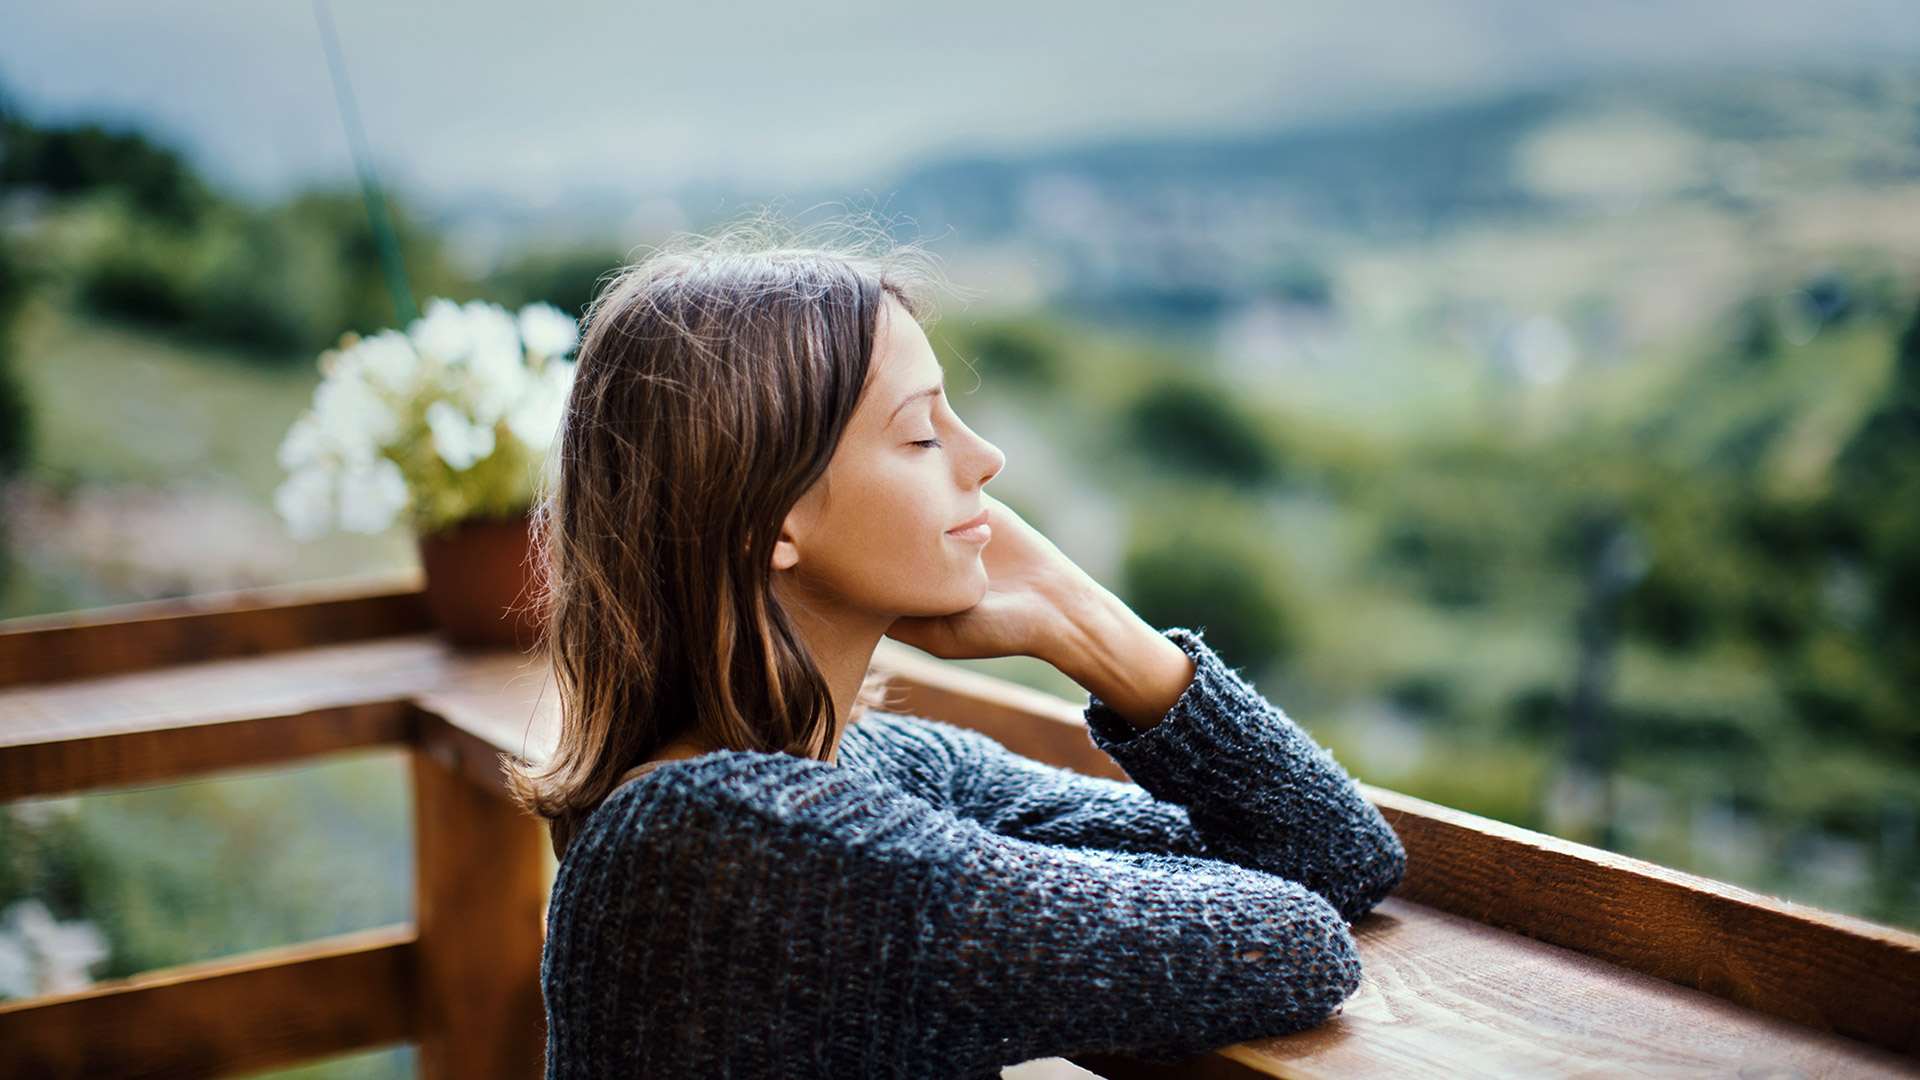 Woman at a table in front of a window overlooking a greenery smiles with her eyes closed and her hand against her face.